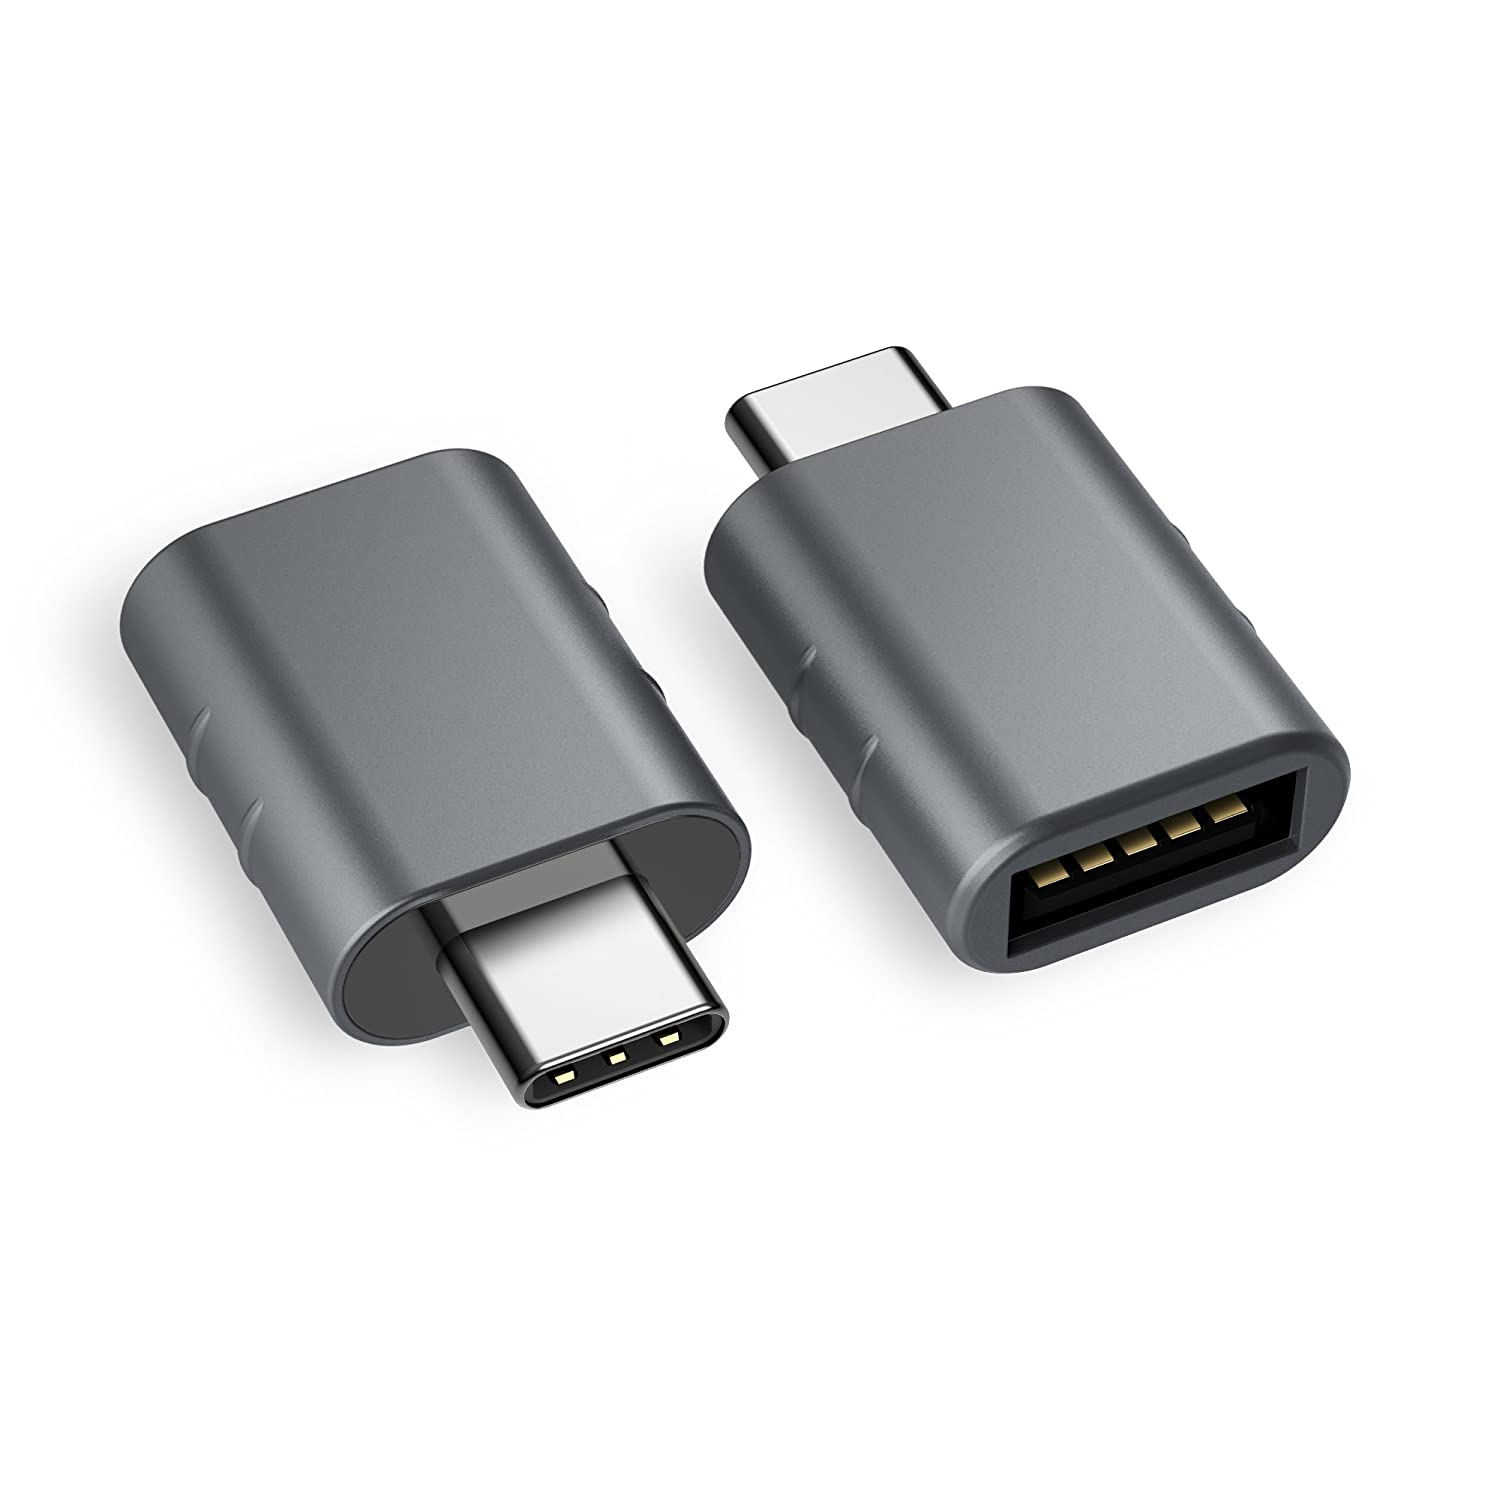 Afholte Amazon.com: Syntech USB C to USB Adapter [2-Pack], Thunderbolt 3 JG-23